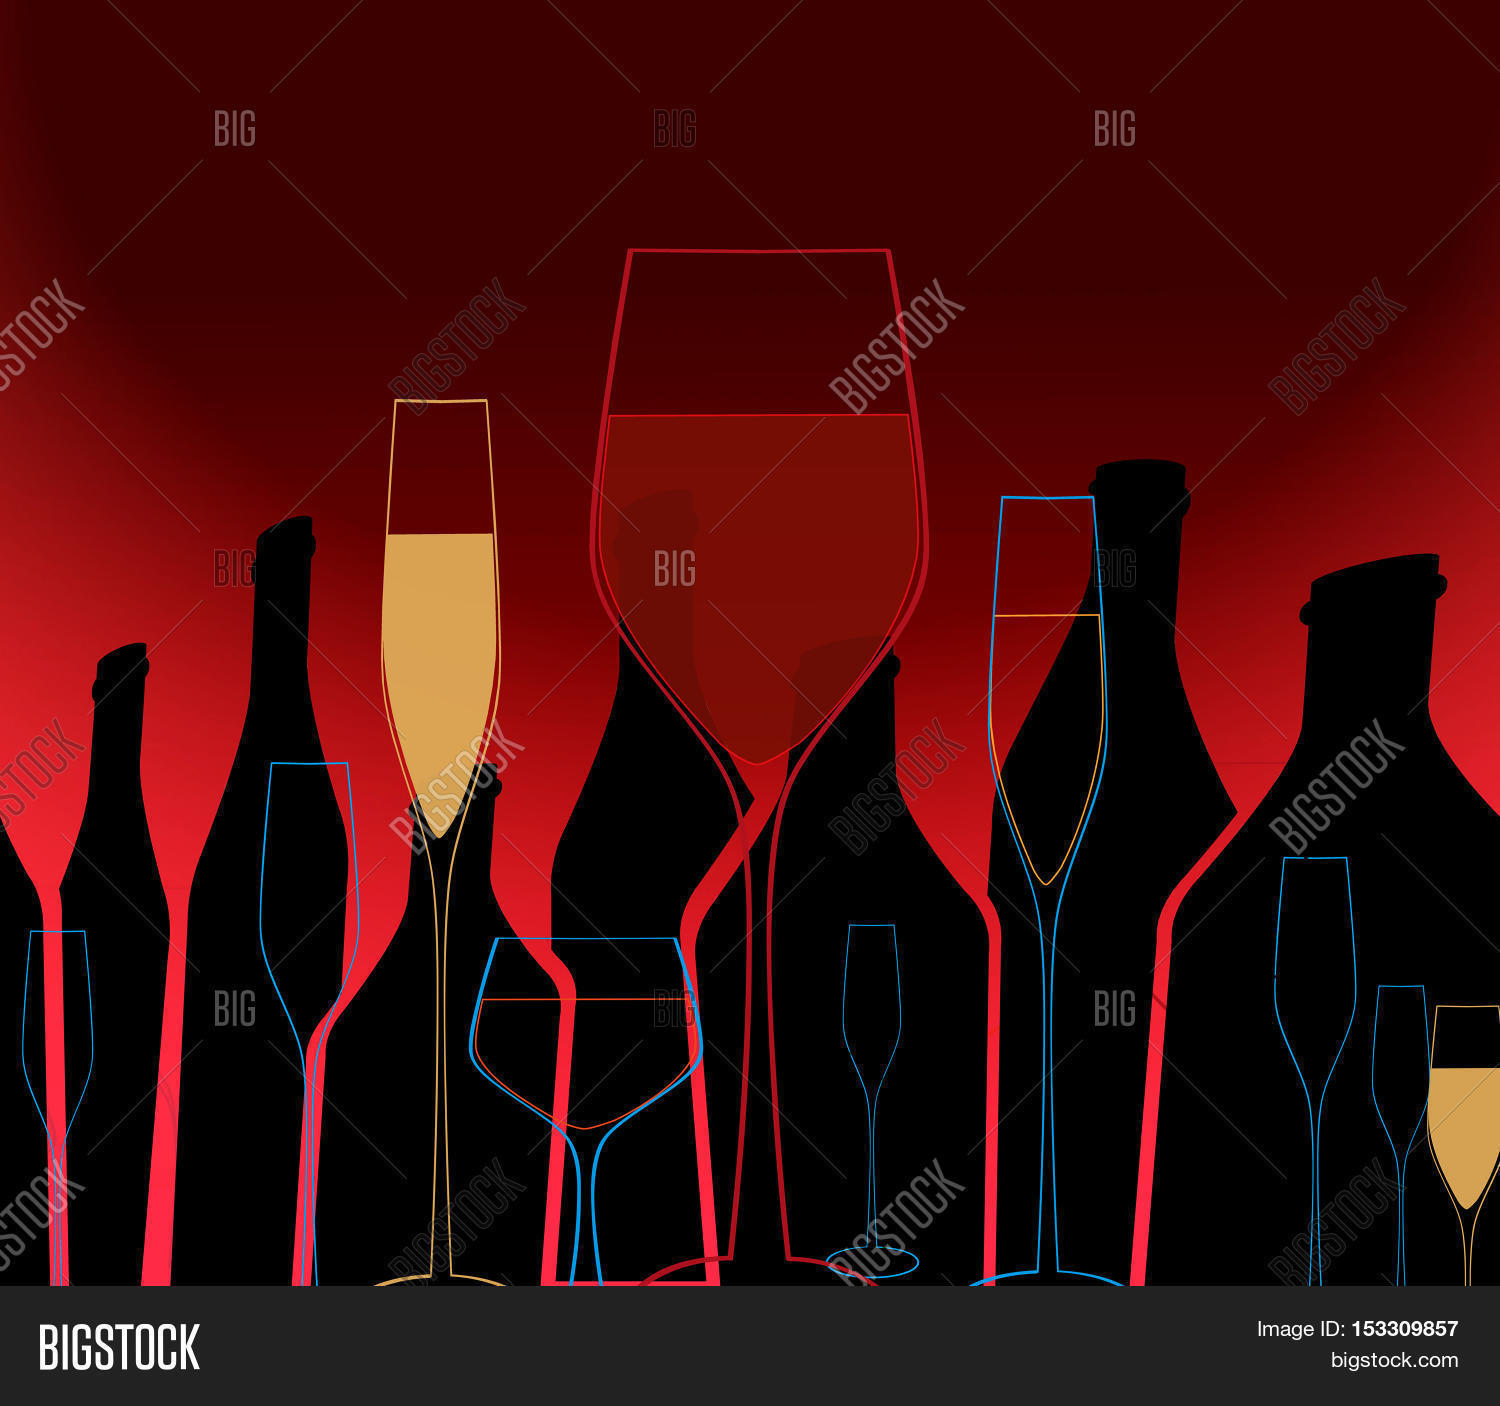 Alcoholic Bottles Vector Photo Free Trial Bigstock